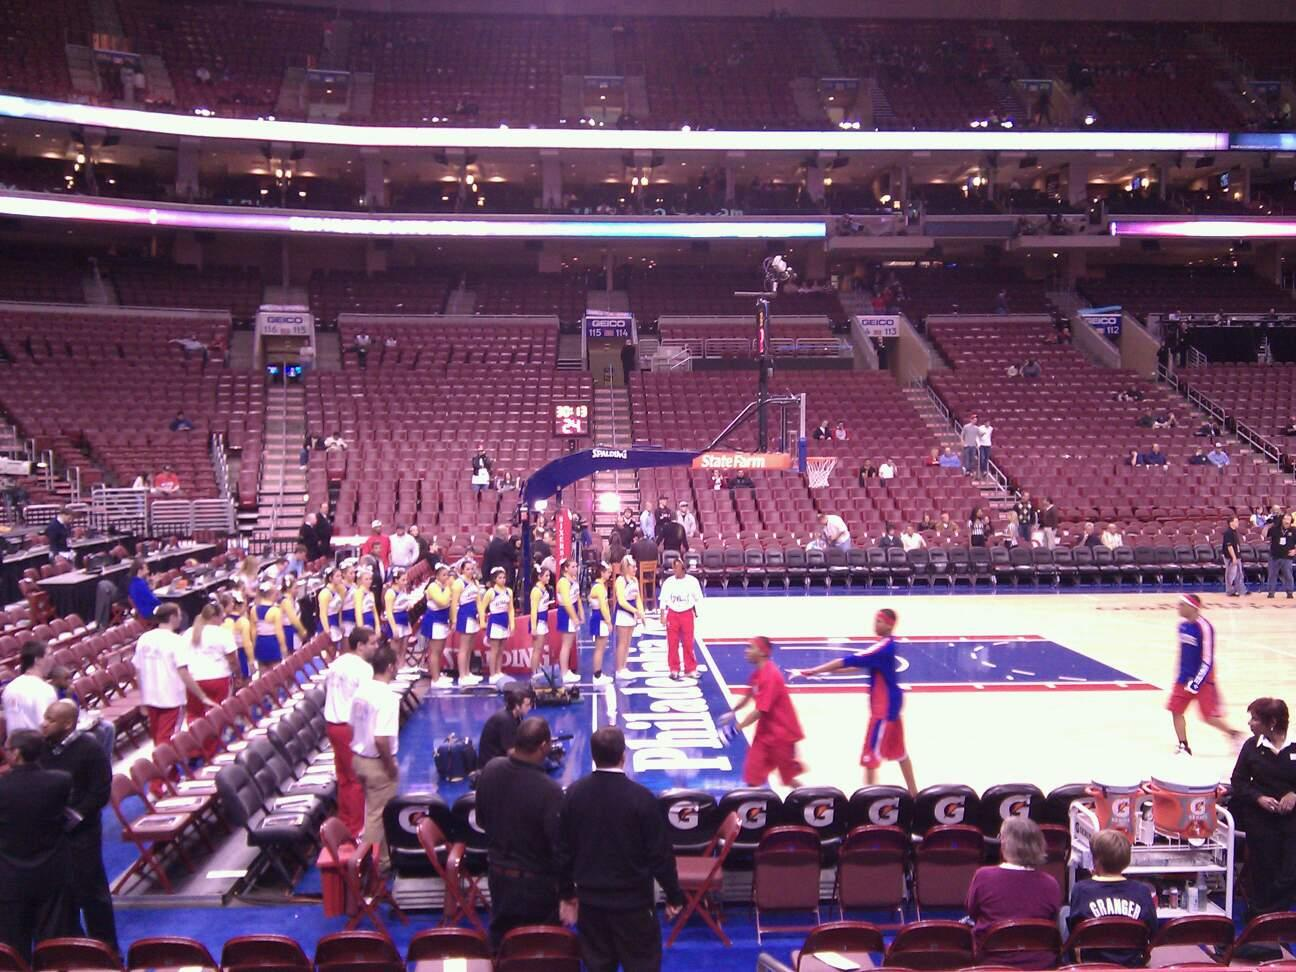 Wells Fargo Center Section 123 Row 7 Seat 14